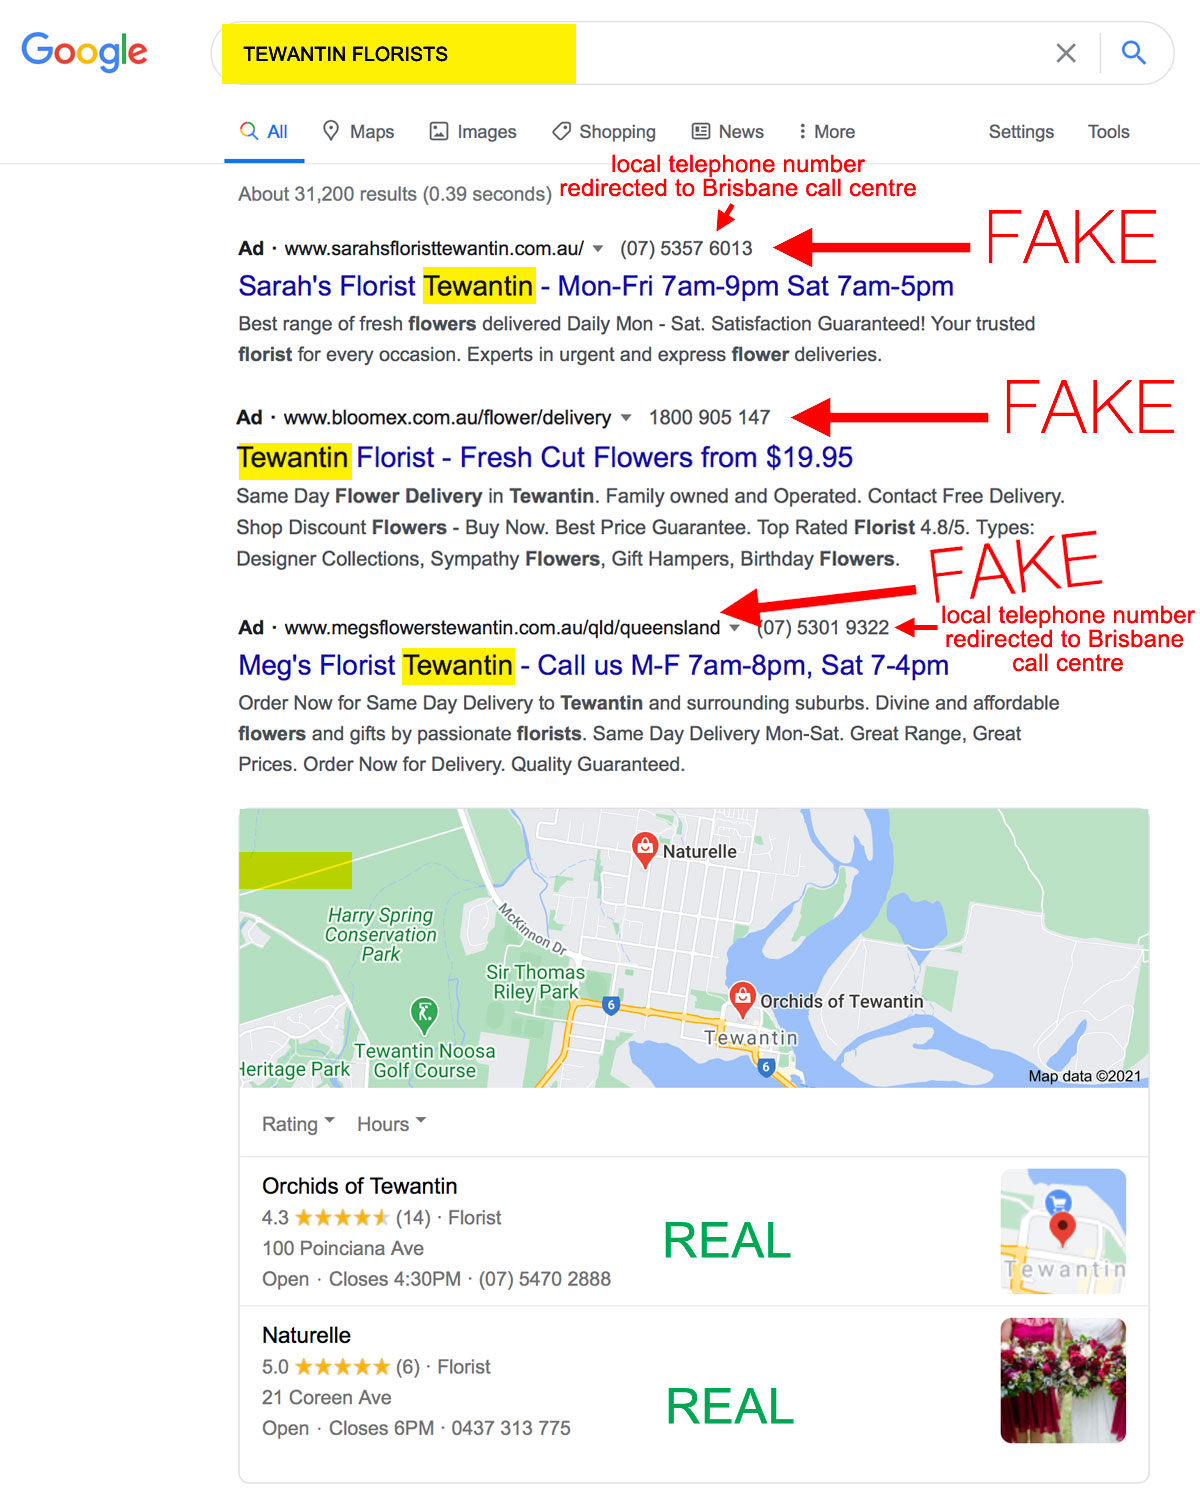 THE CROOKED GOOGLE SYSTEM